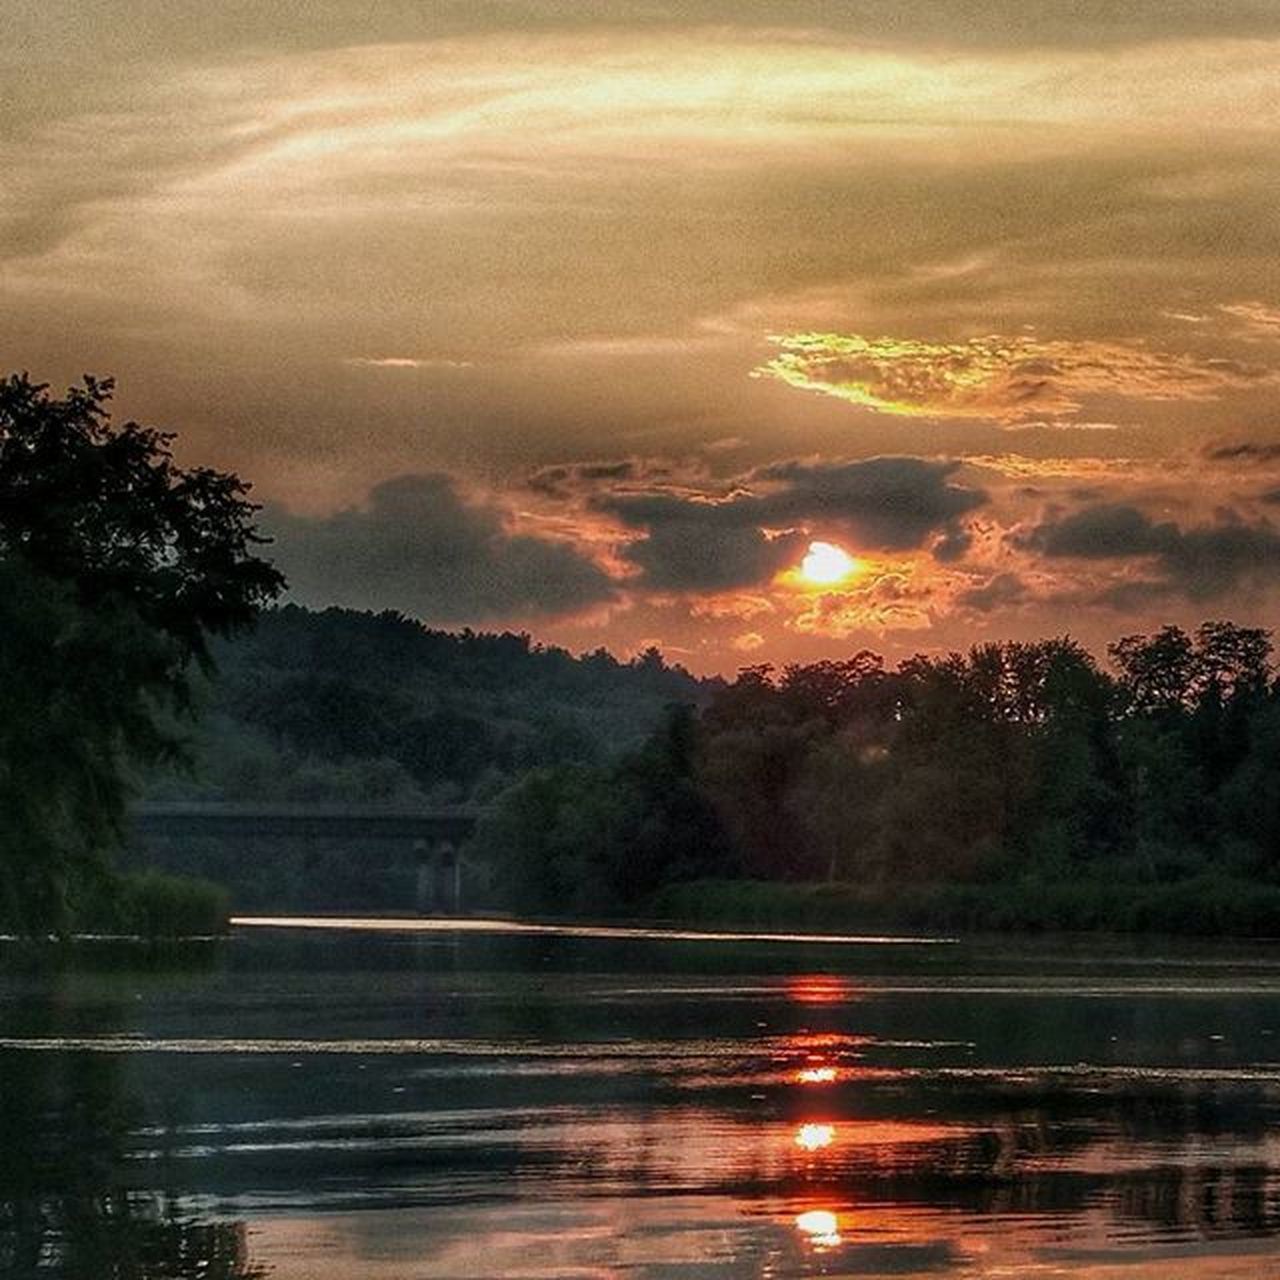 sunset, tree, reflection, beauty in nature, nature, scenics, water, sky, tranquil scene, tranquility, lake, no people, outdoors, cloud - sky, sun, day